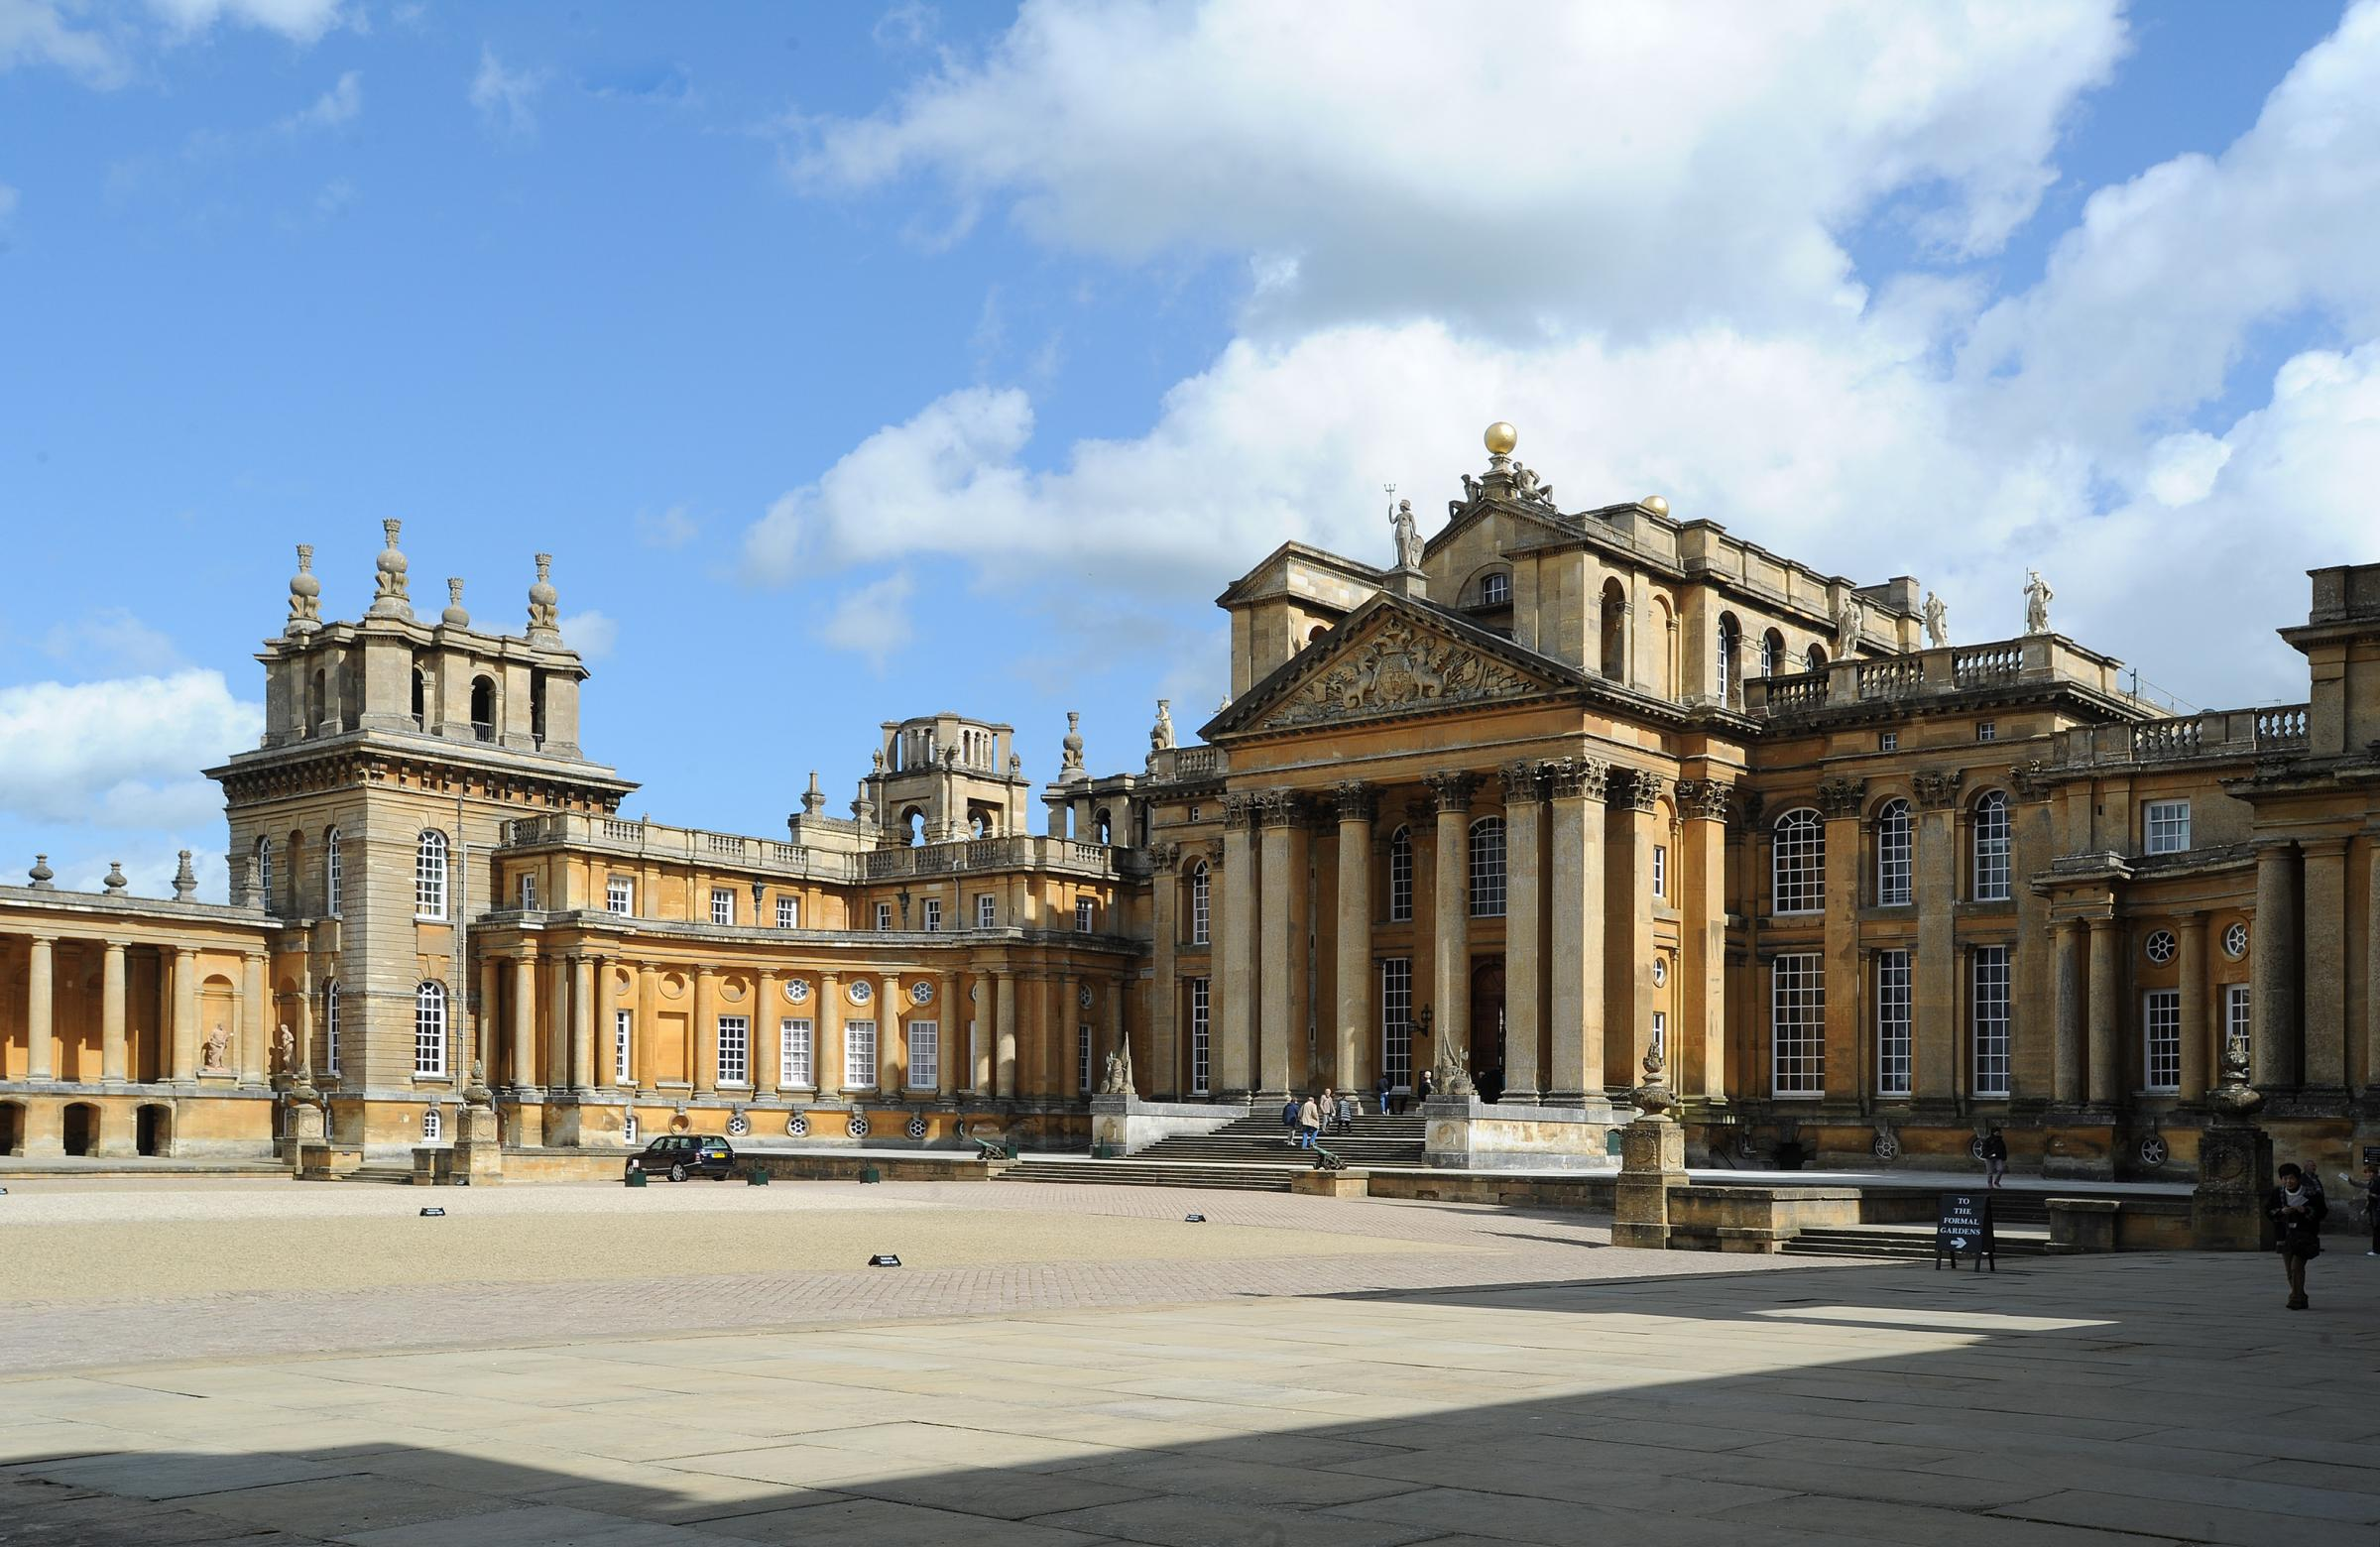 PIC BY JON LEWIS..09.05.14. Blenheim Palace, Woodstock.Catchline: Blenheim painting prizes.Priority: Pic.For: MO.Blenheim Palace Annual Heritage Awards..The Duke of Marlborough presented prizes to award winners..Blenheim Palace, Woodstock GV scenesetter s